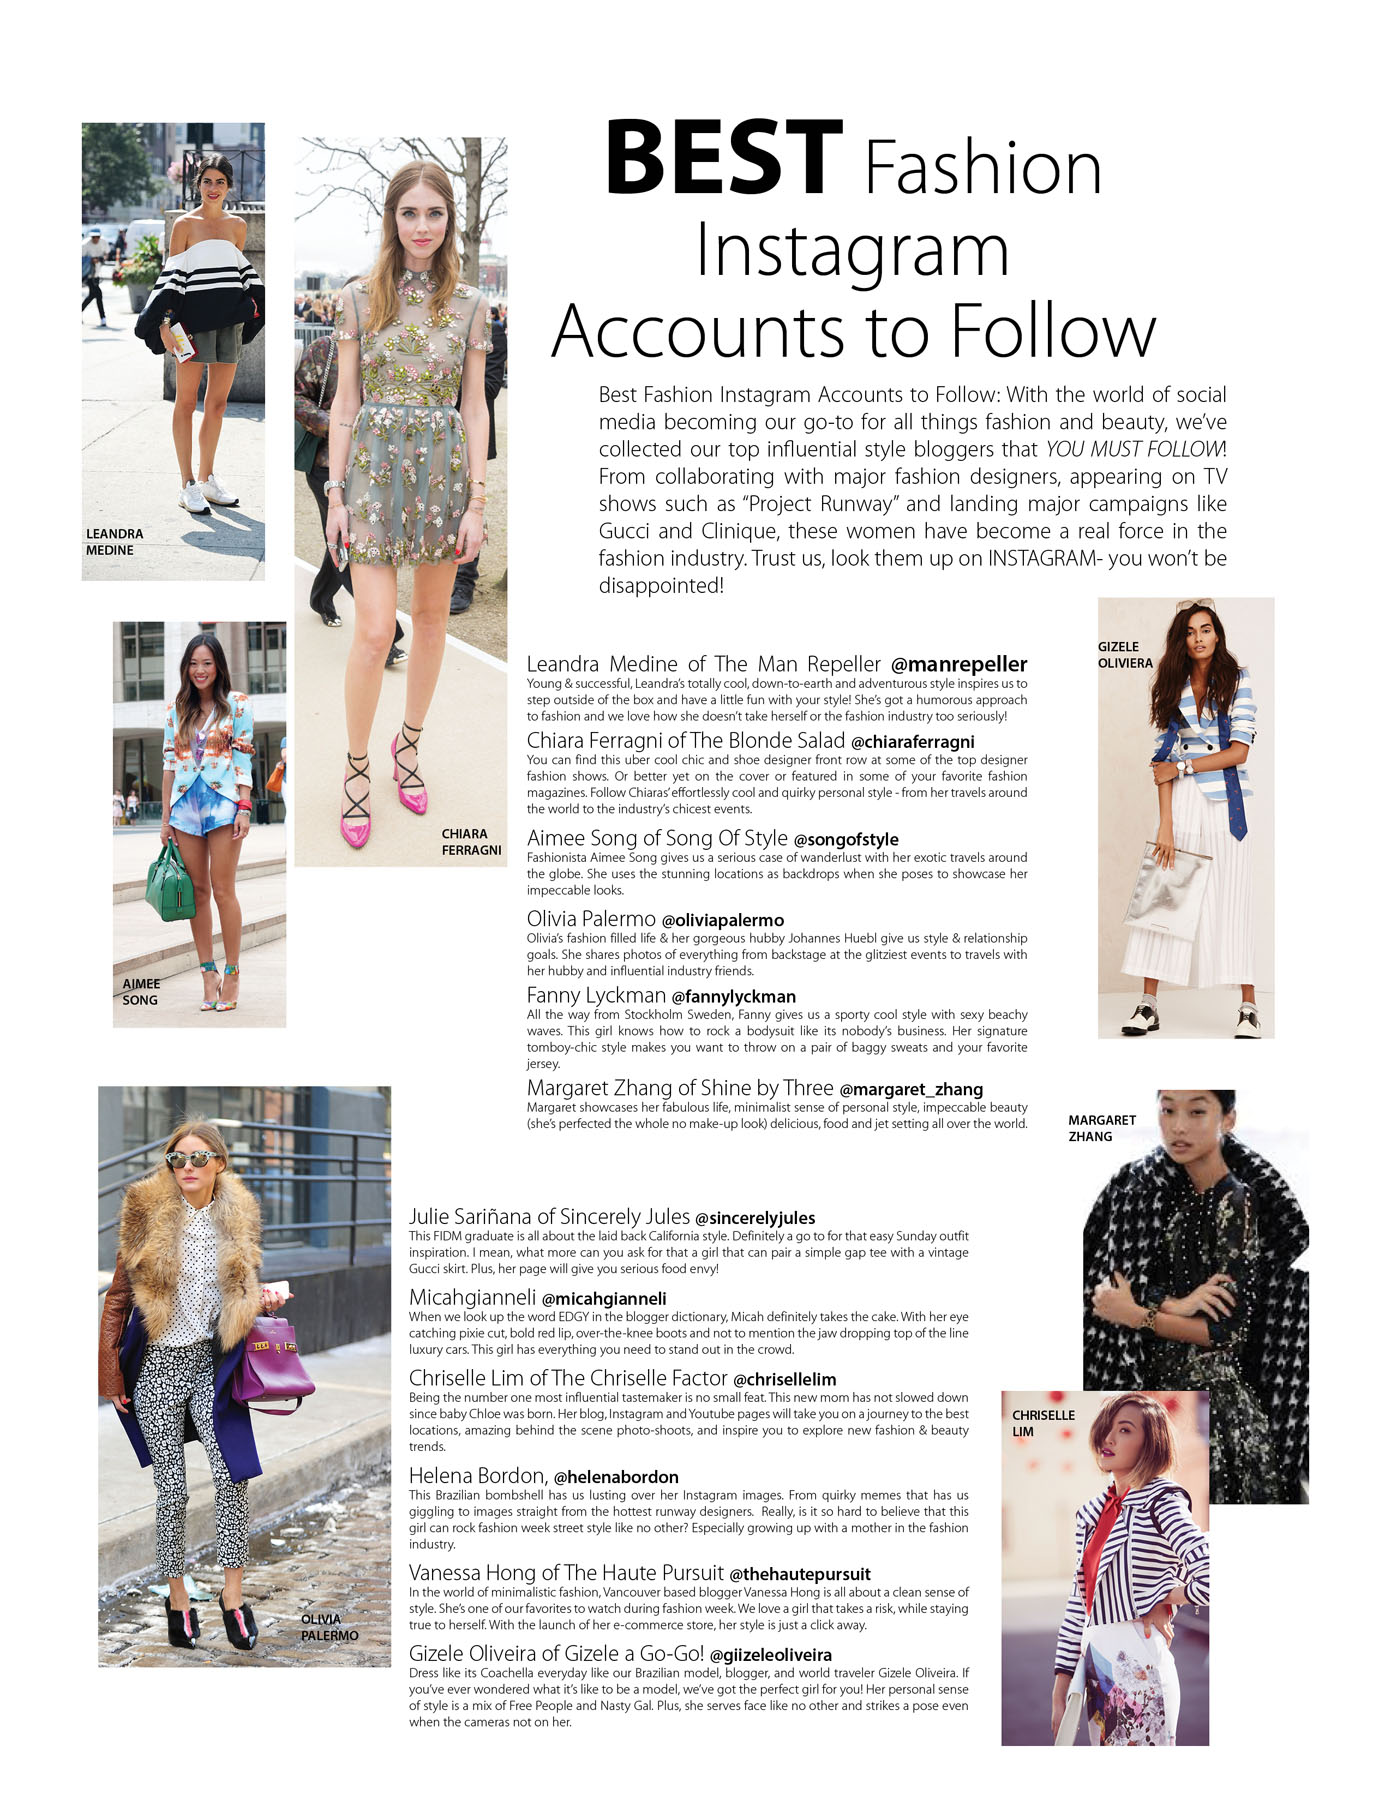 BEST Fashion Instagram Accounts to Follow